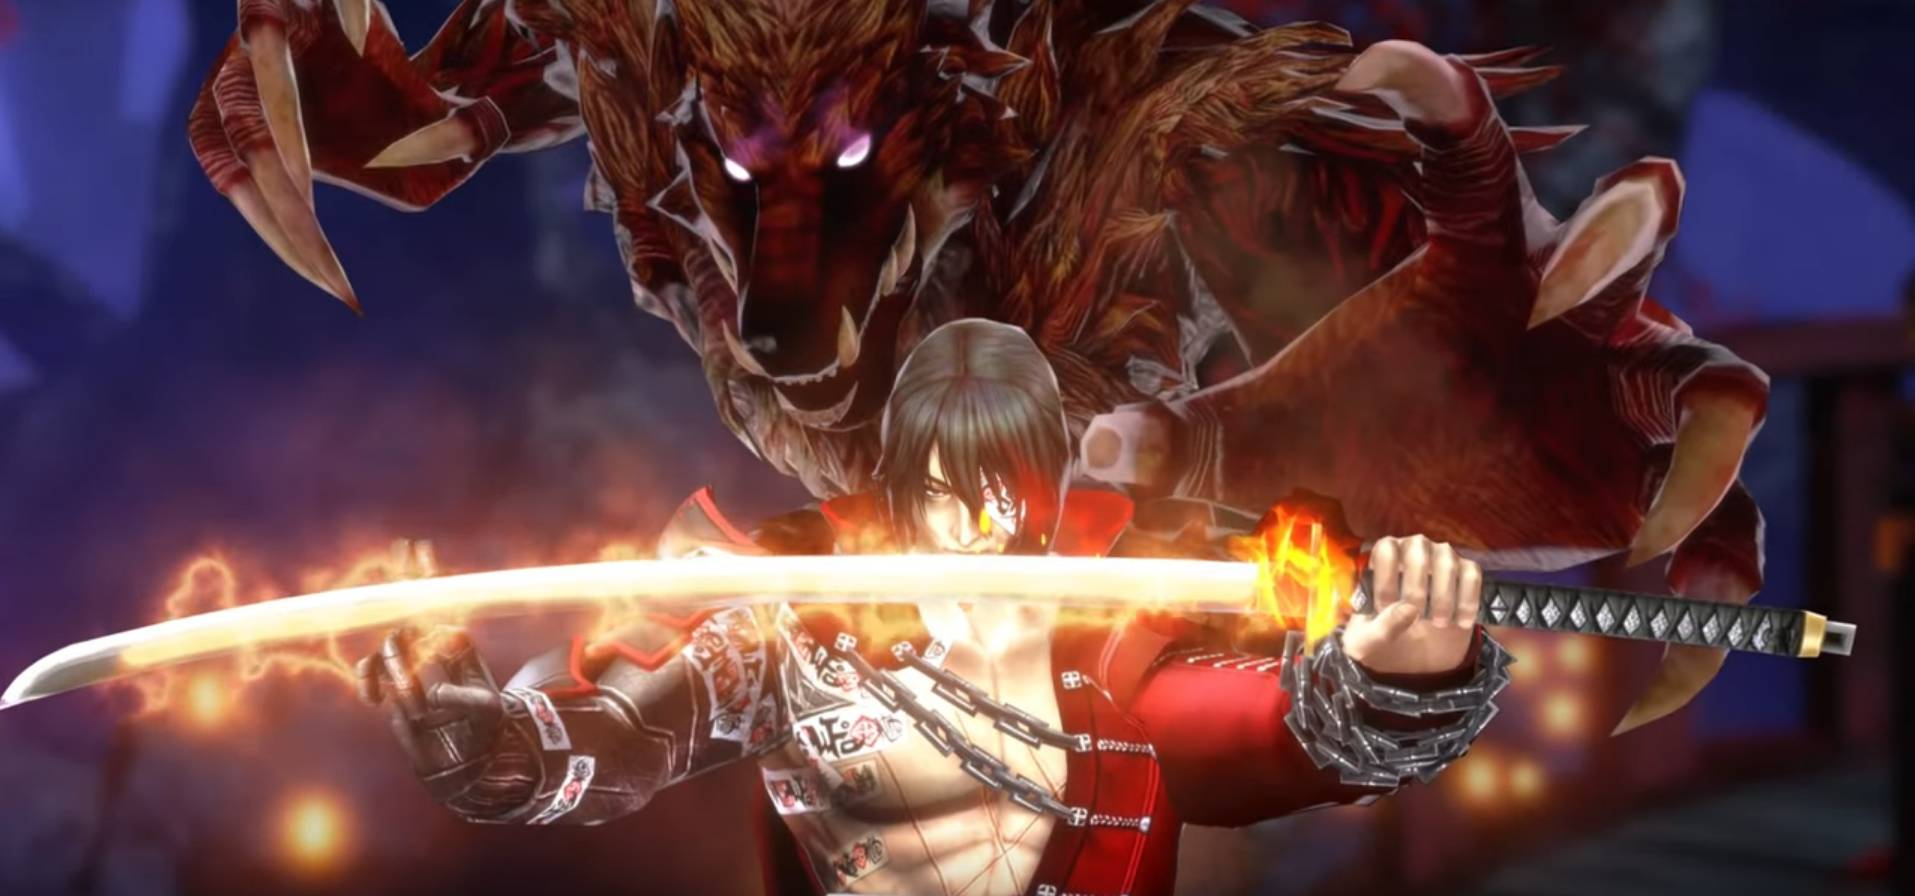 Bloodstained: Ritual of the Night Update 1.03 Adds Various Gameplay Improvements